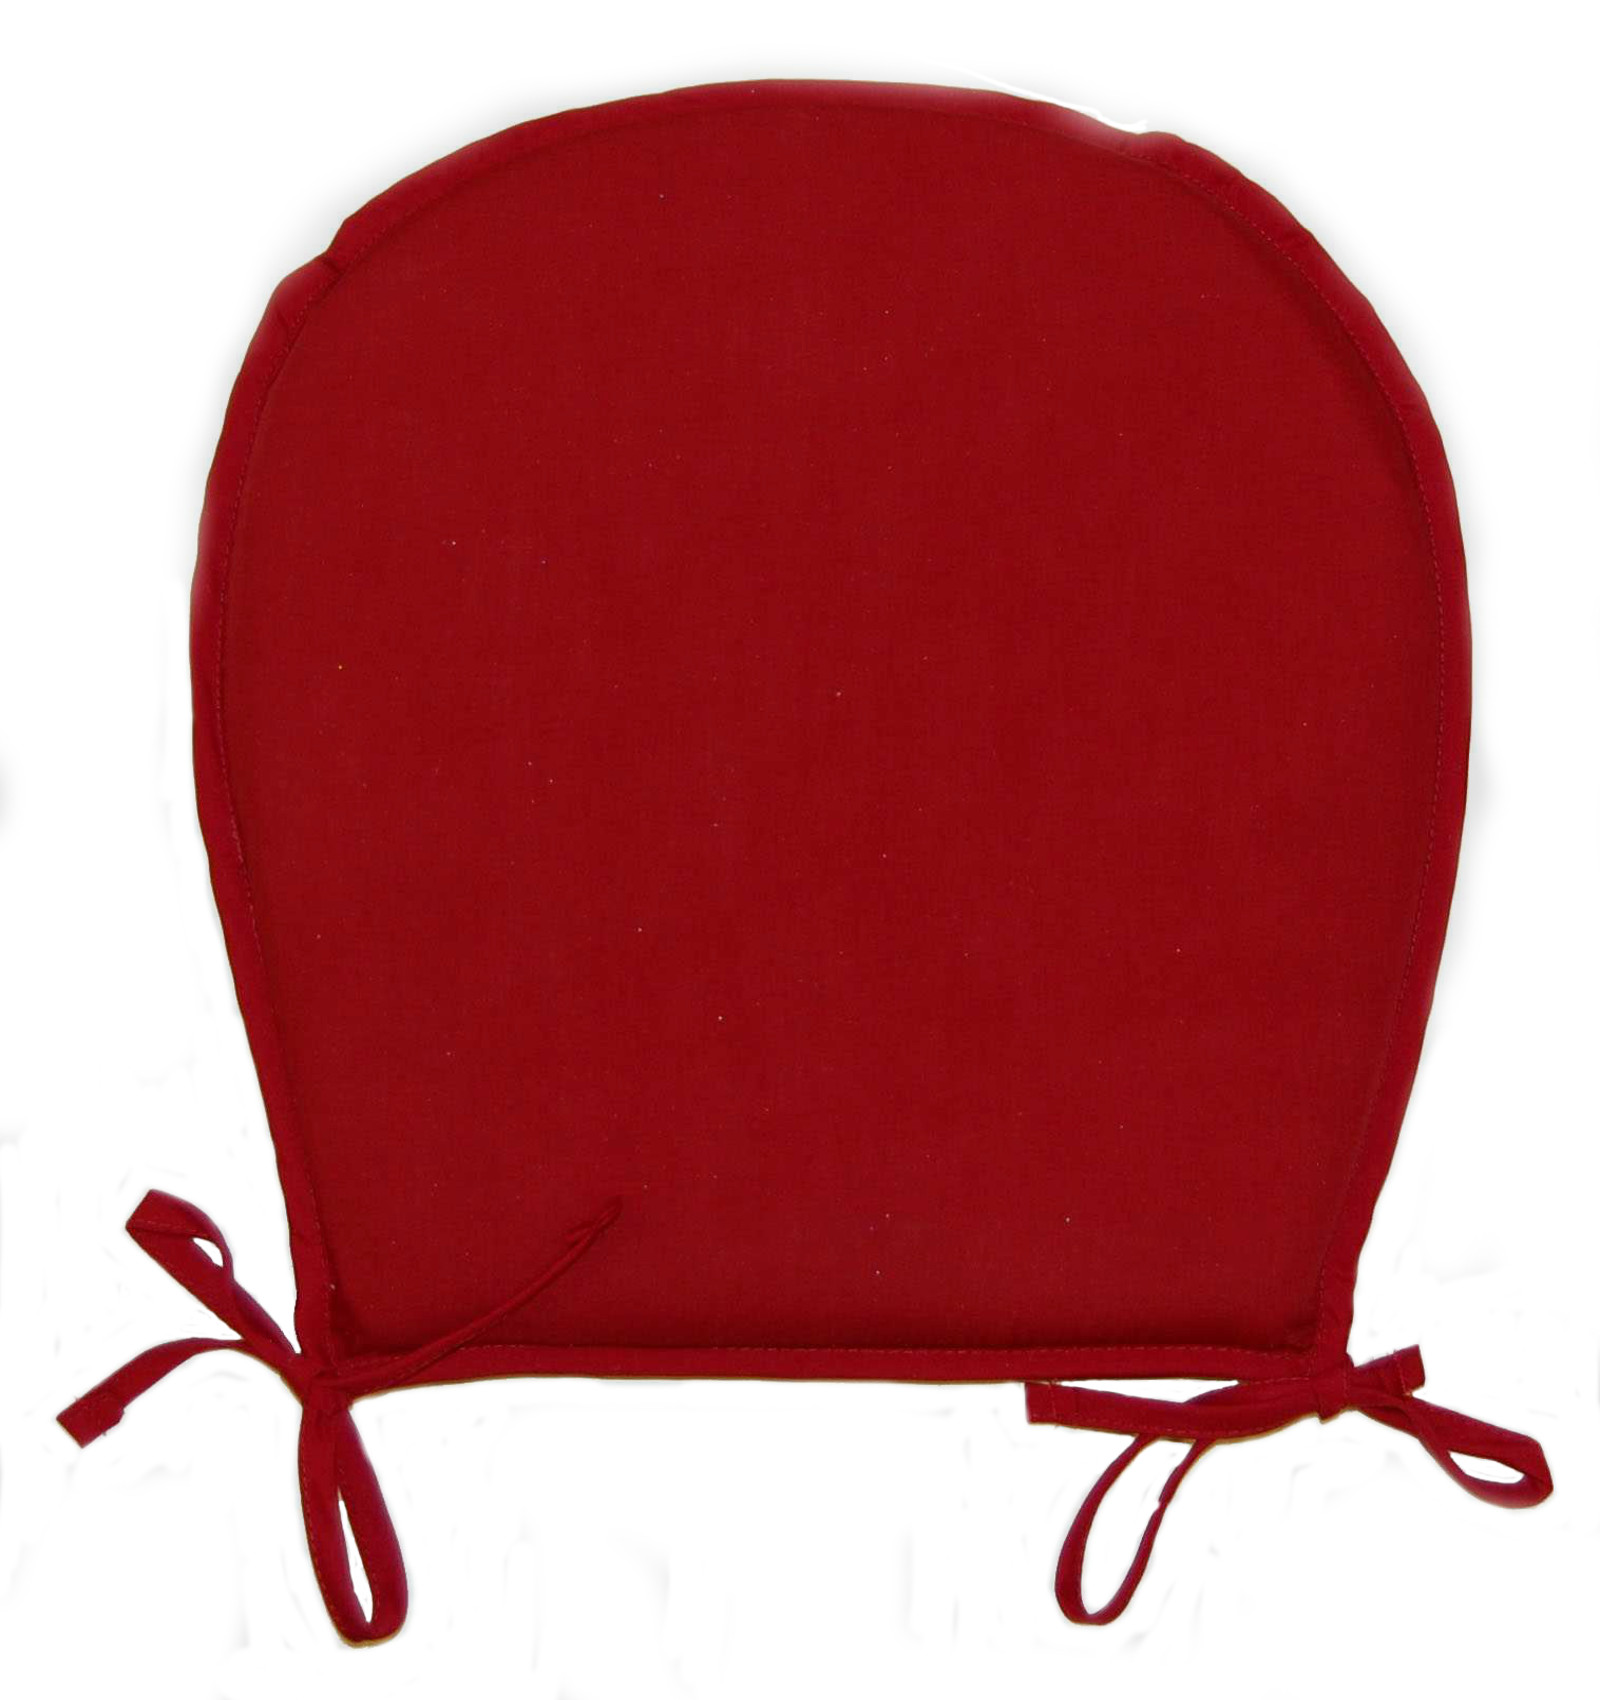 seat cushions for kitchen chairs kitchen chair seat cushions Seat cushions for kitchen chairs Photo 5